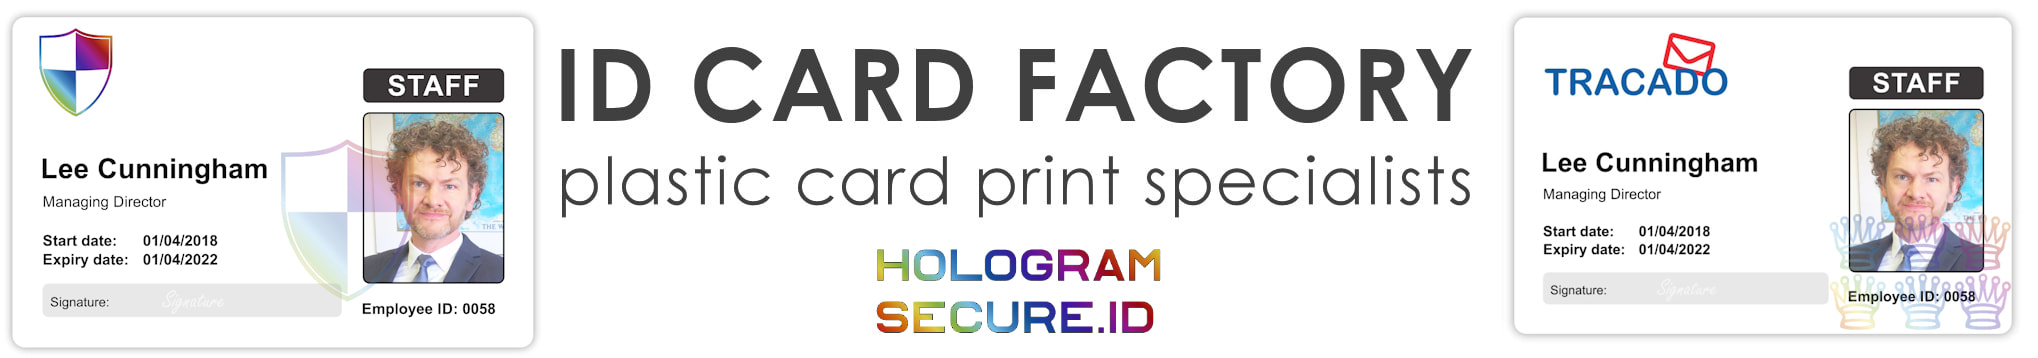 Merseyside holographic ID cards | examples of staff photo ID cards | samples of employee Identity card printing | Workers ID cards printed with hologram